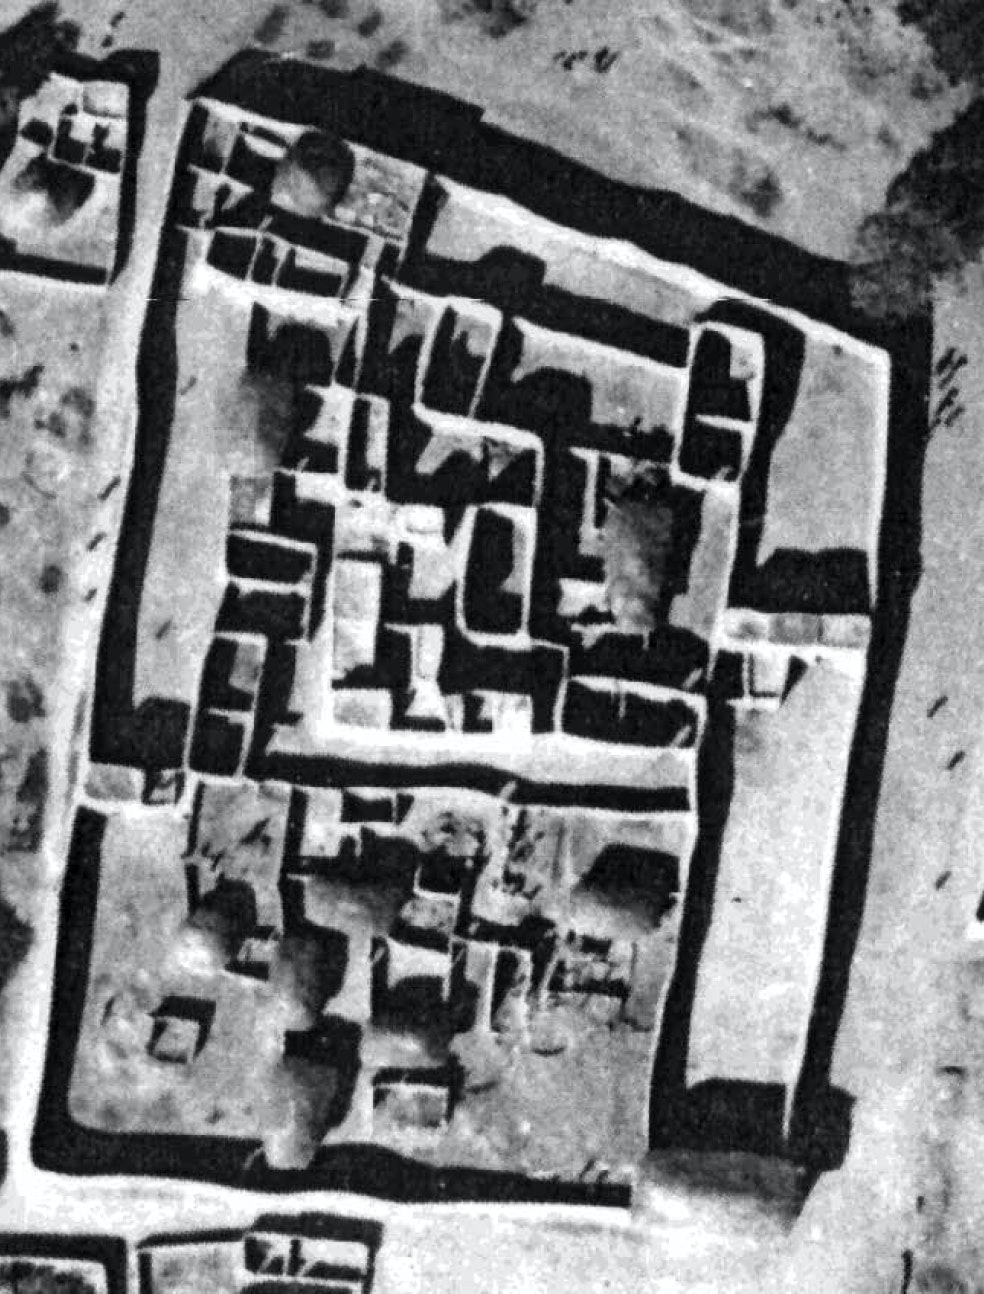 A bird's-eye view of the remnants of an African palace.